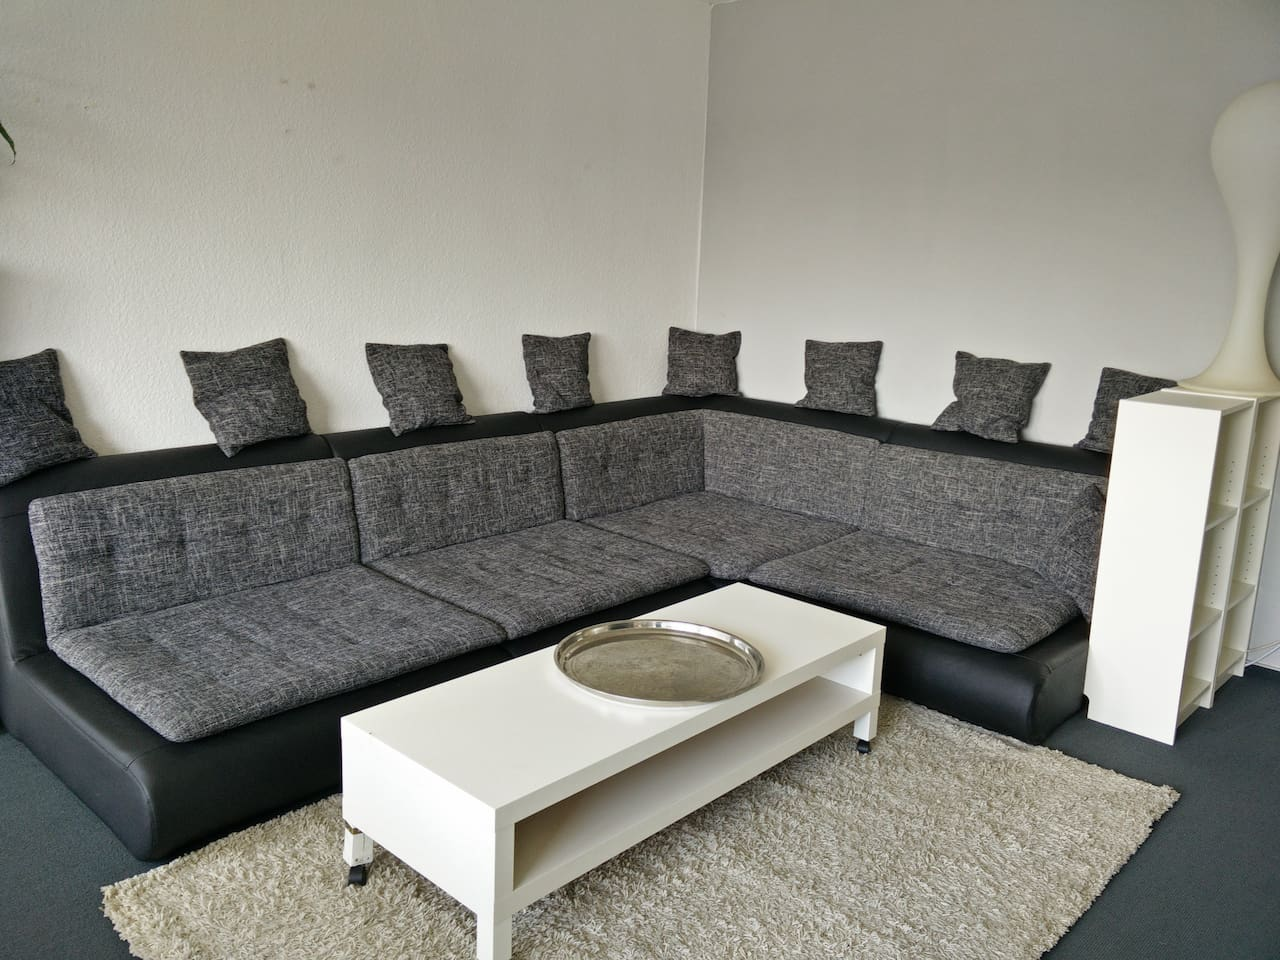 Big comfortable sofa. Place for two people to sleep.